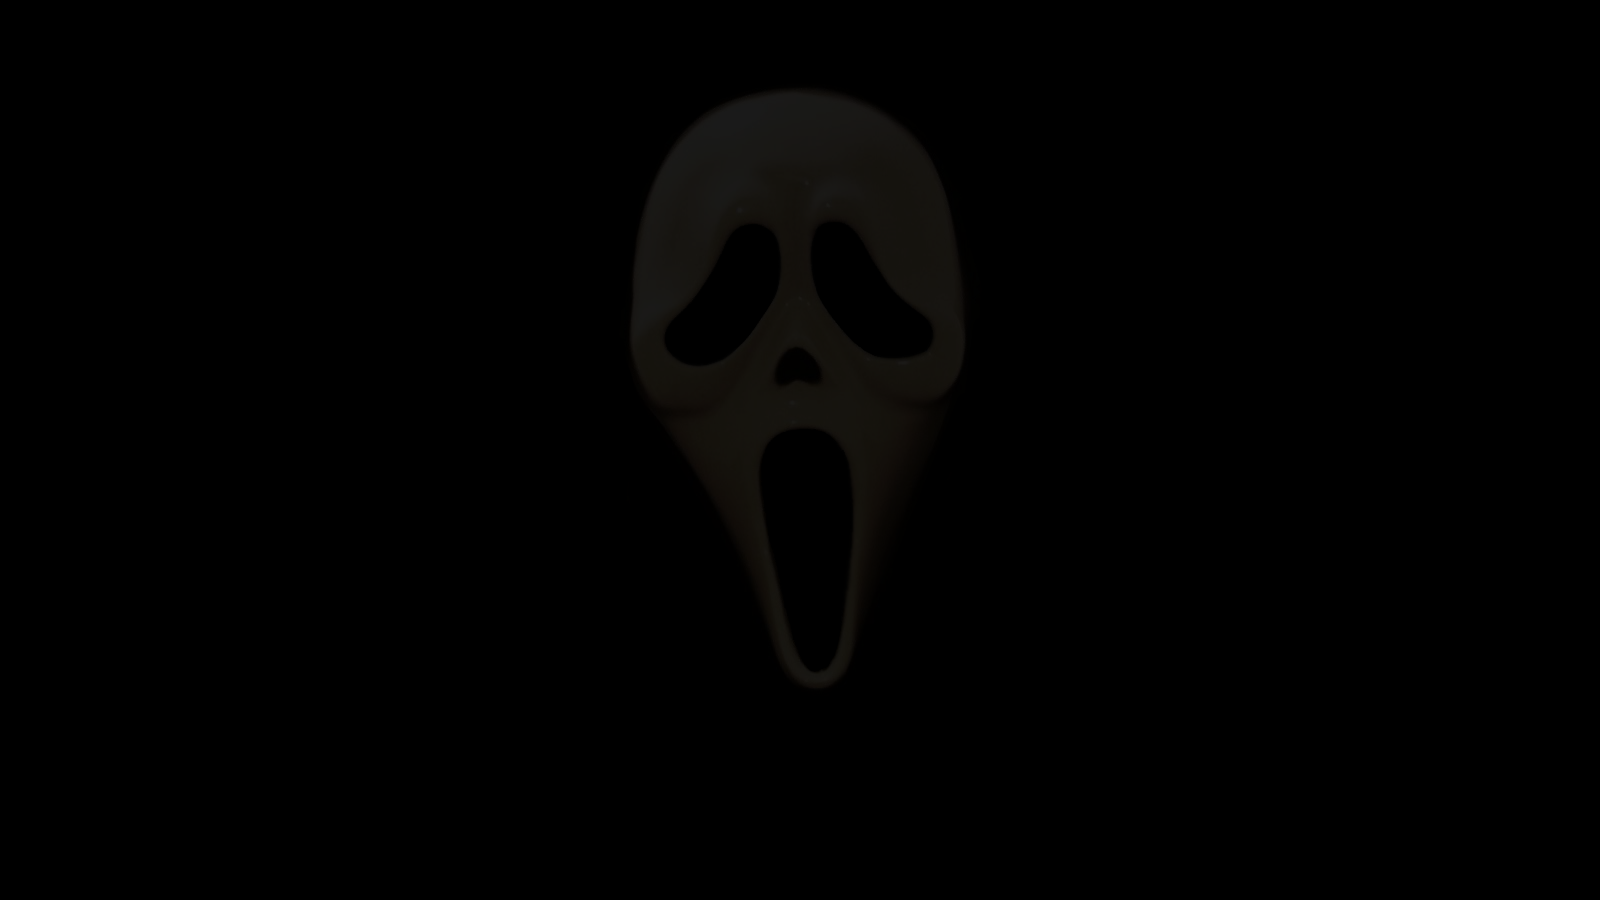 Amazing Scream 2016 Wallpapers, 39173835